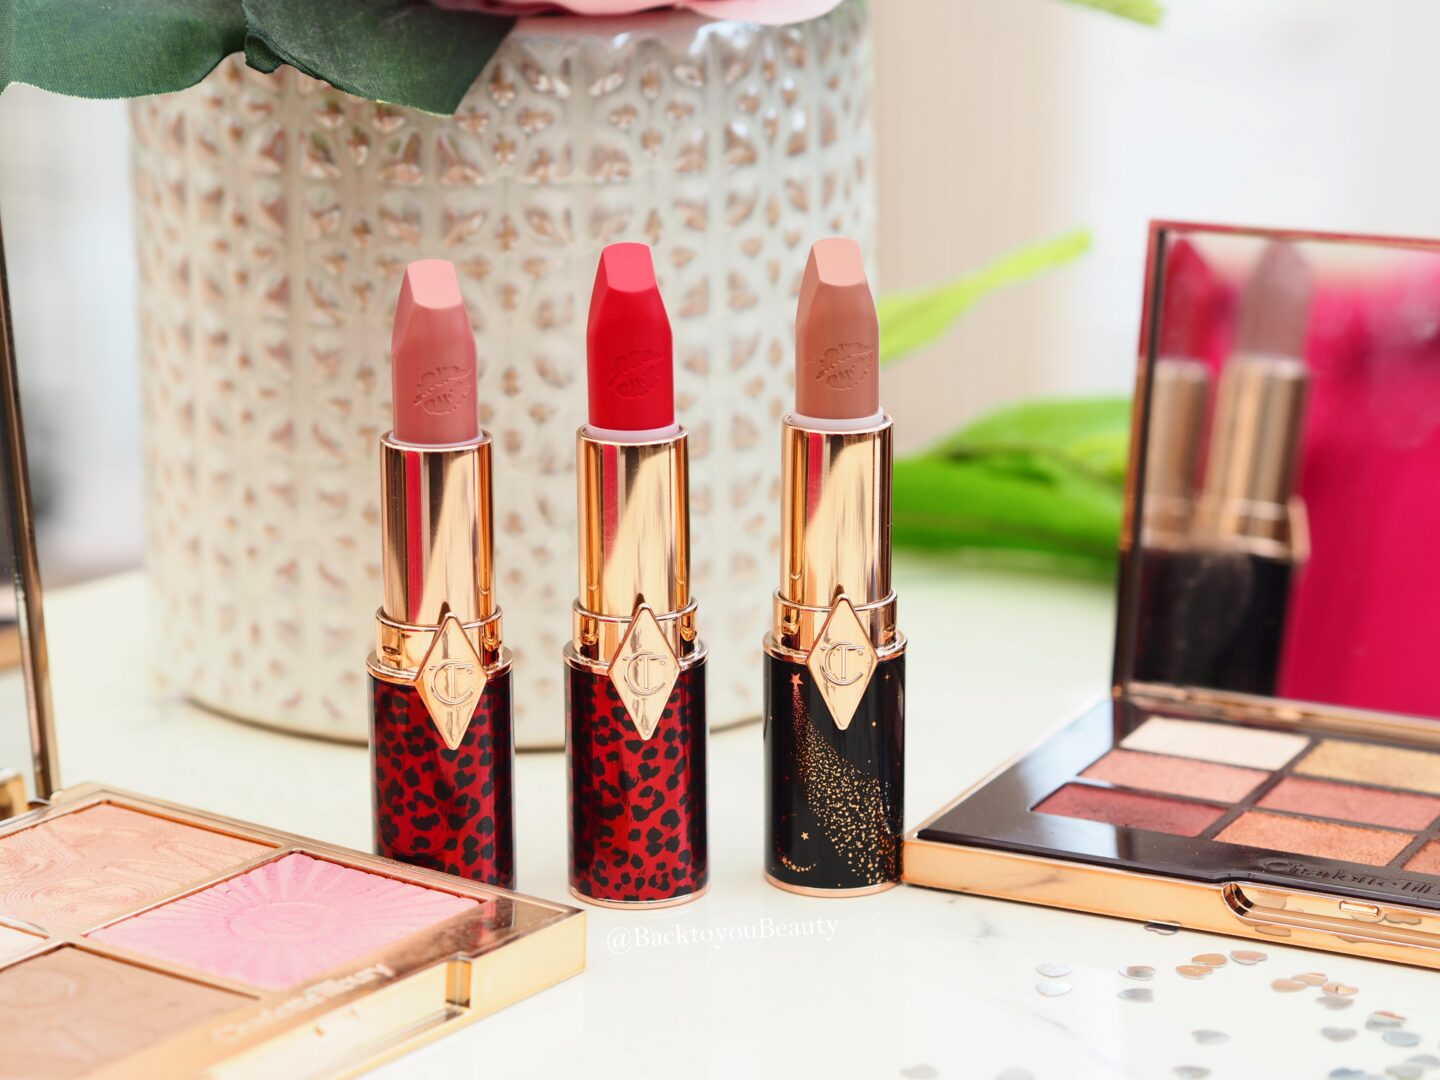 Charlotte Tilbury Hot Lips 2